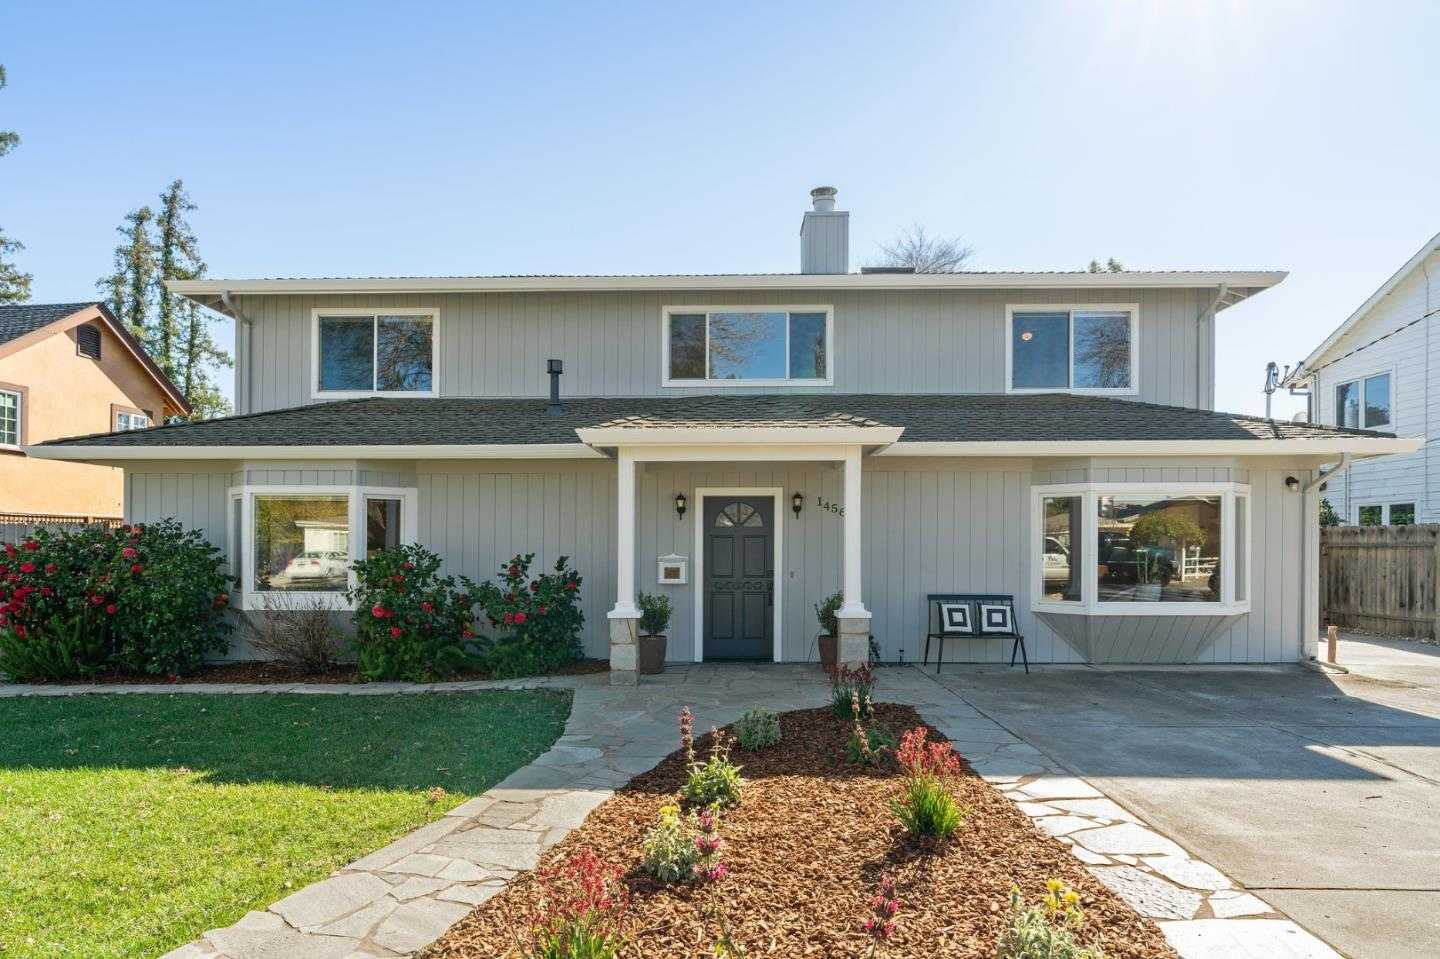 $2,175,000 - 5Br/3Ba -  for Sale in San Jose